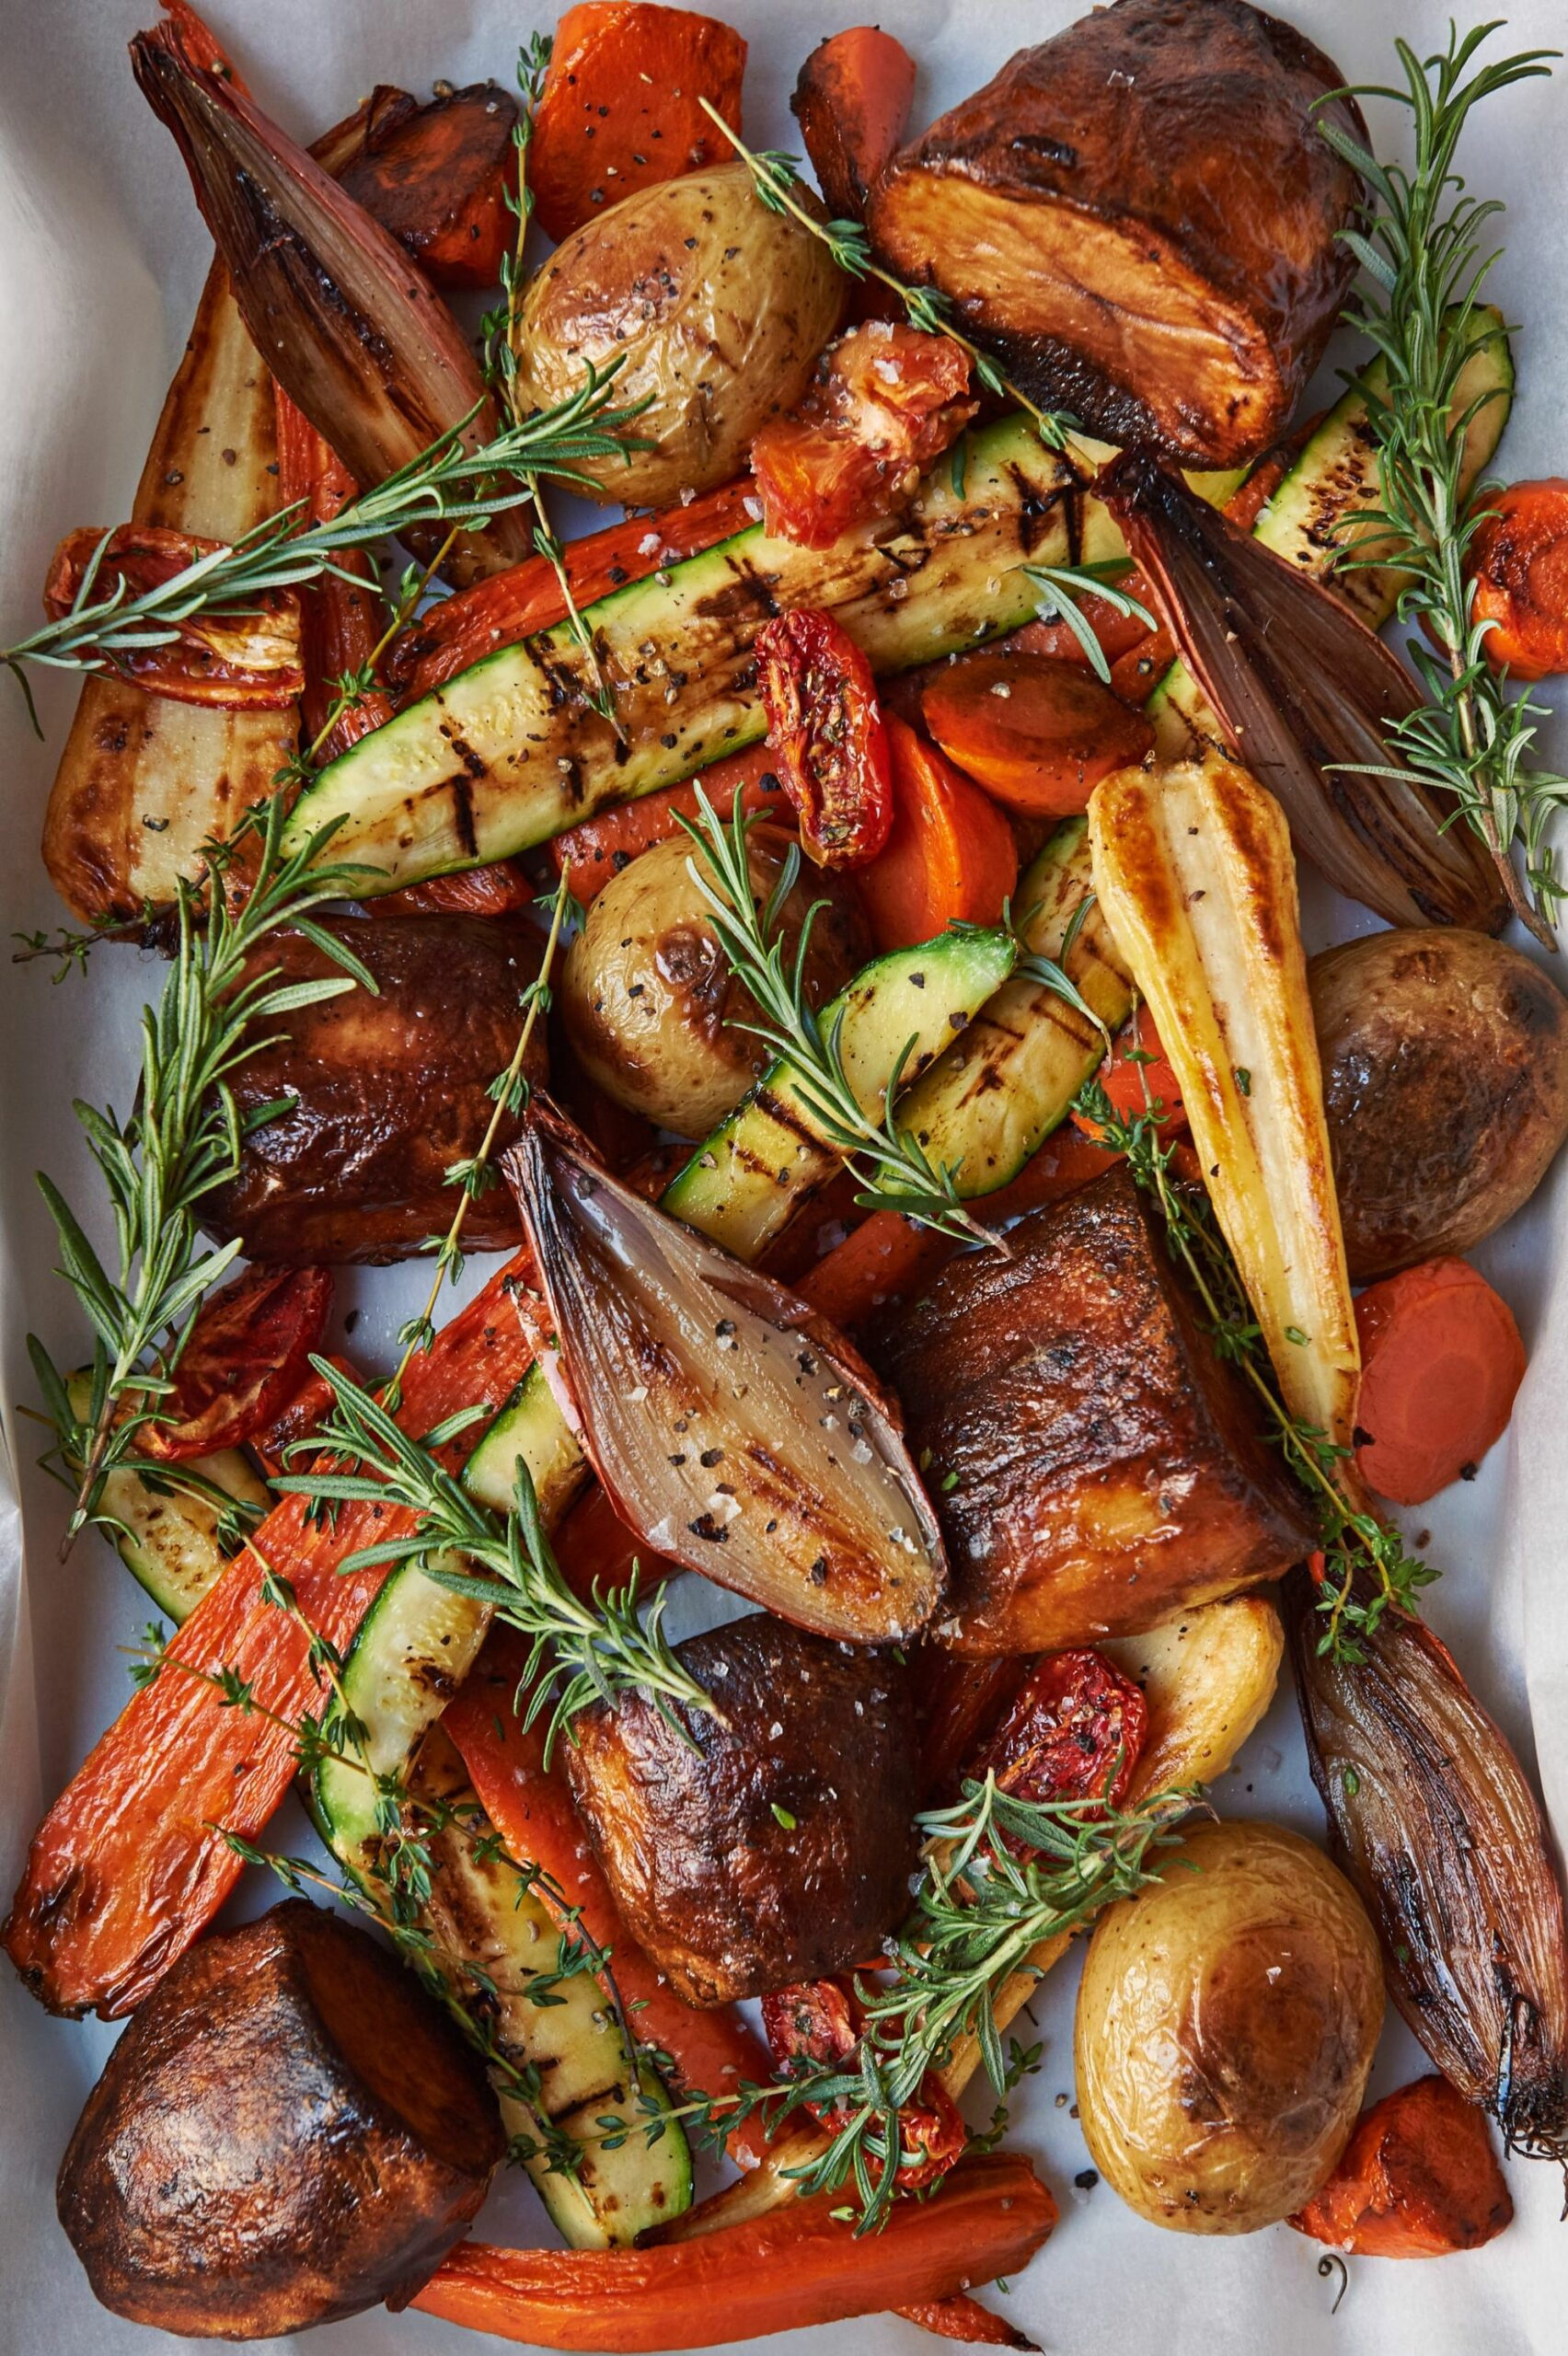 Rosemary and Thyme Roasted Vegetables For the Classic Christmas Dinner - Vegetable Recipes For Xmas Dinner